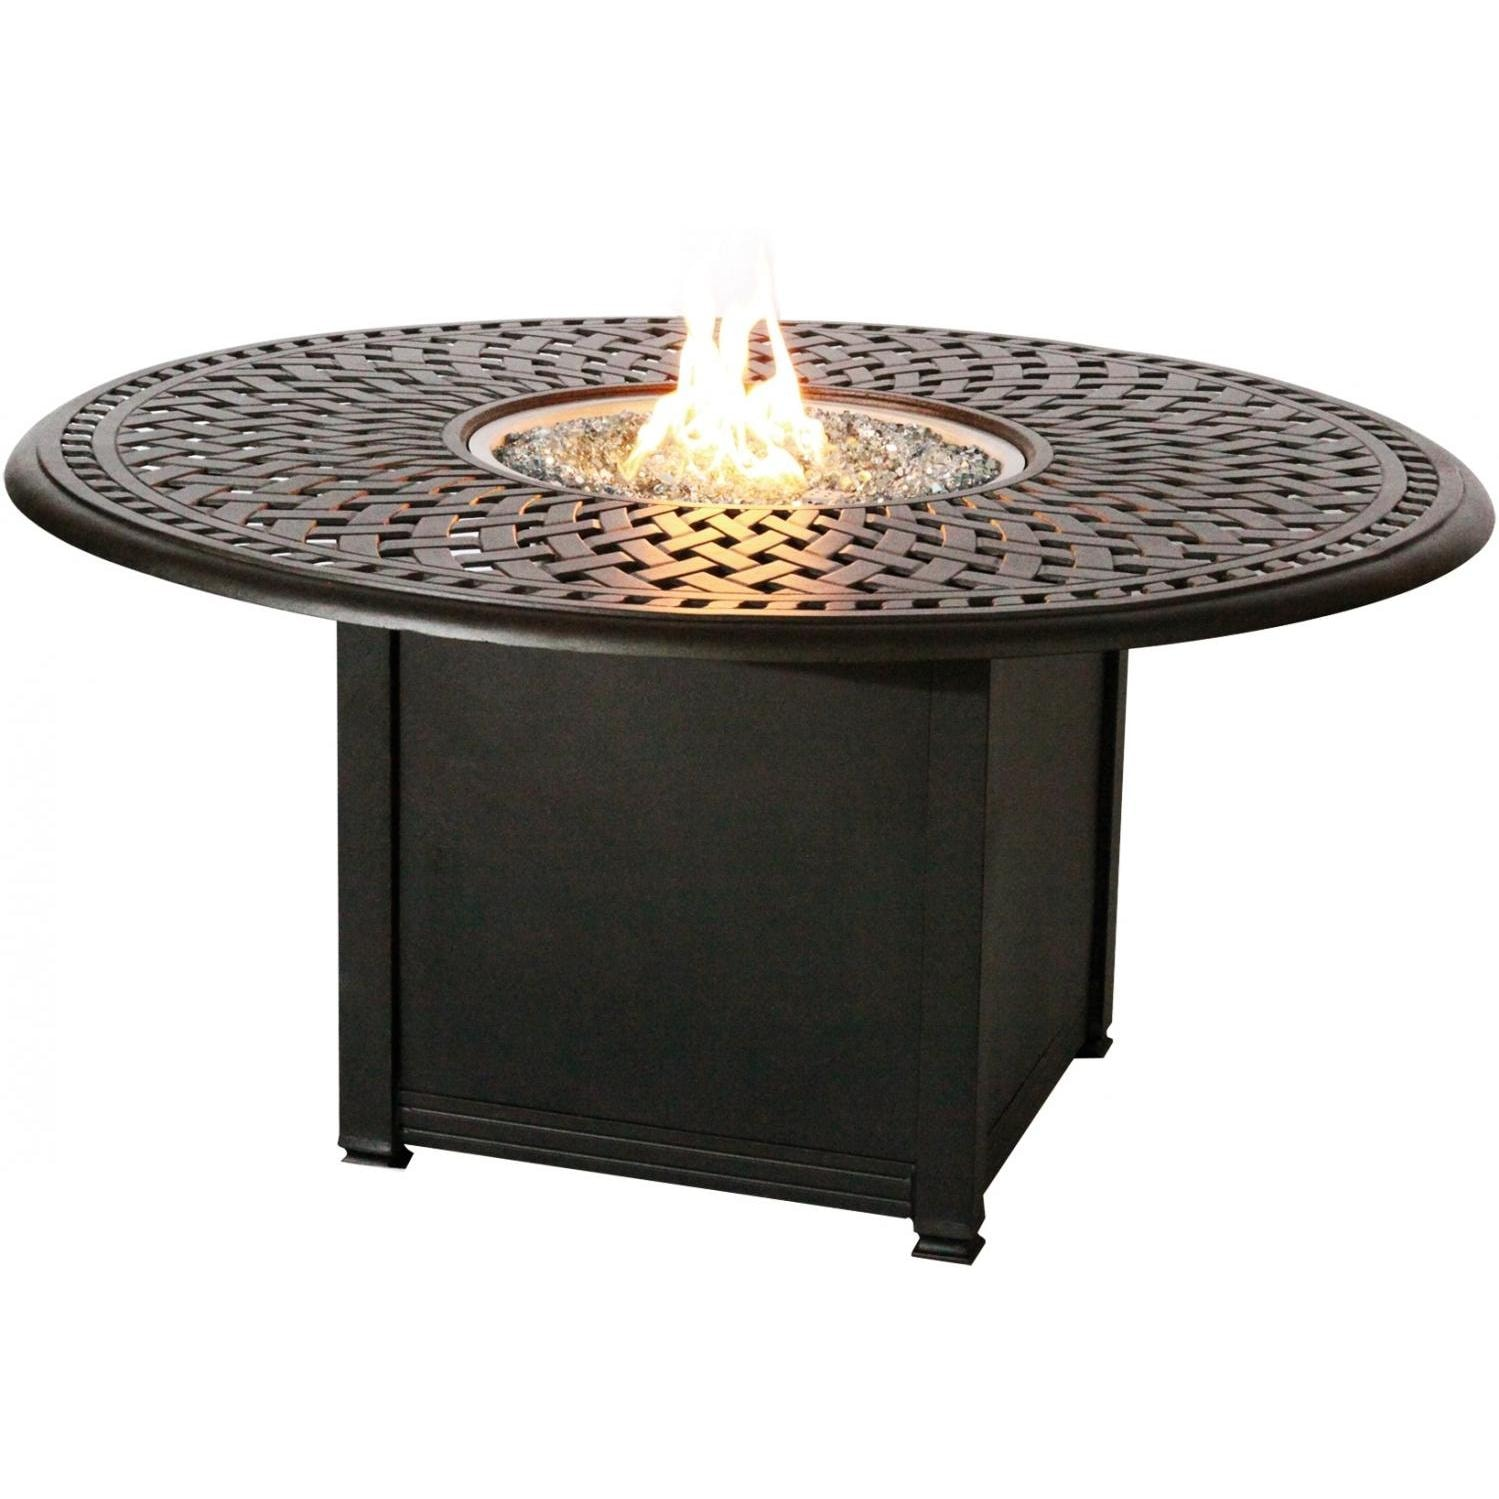 Signature 60 Inch Propane Fire Pit Dining Table By Darlee